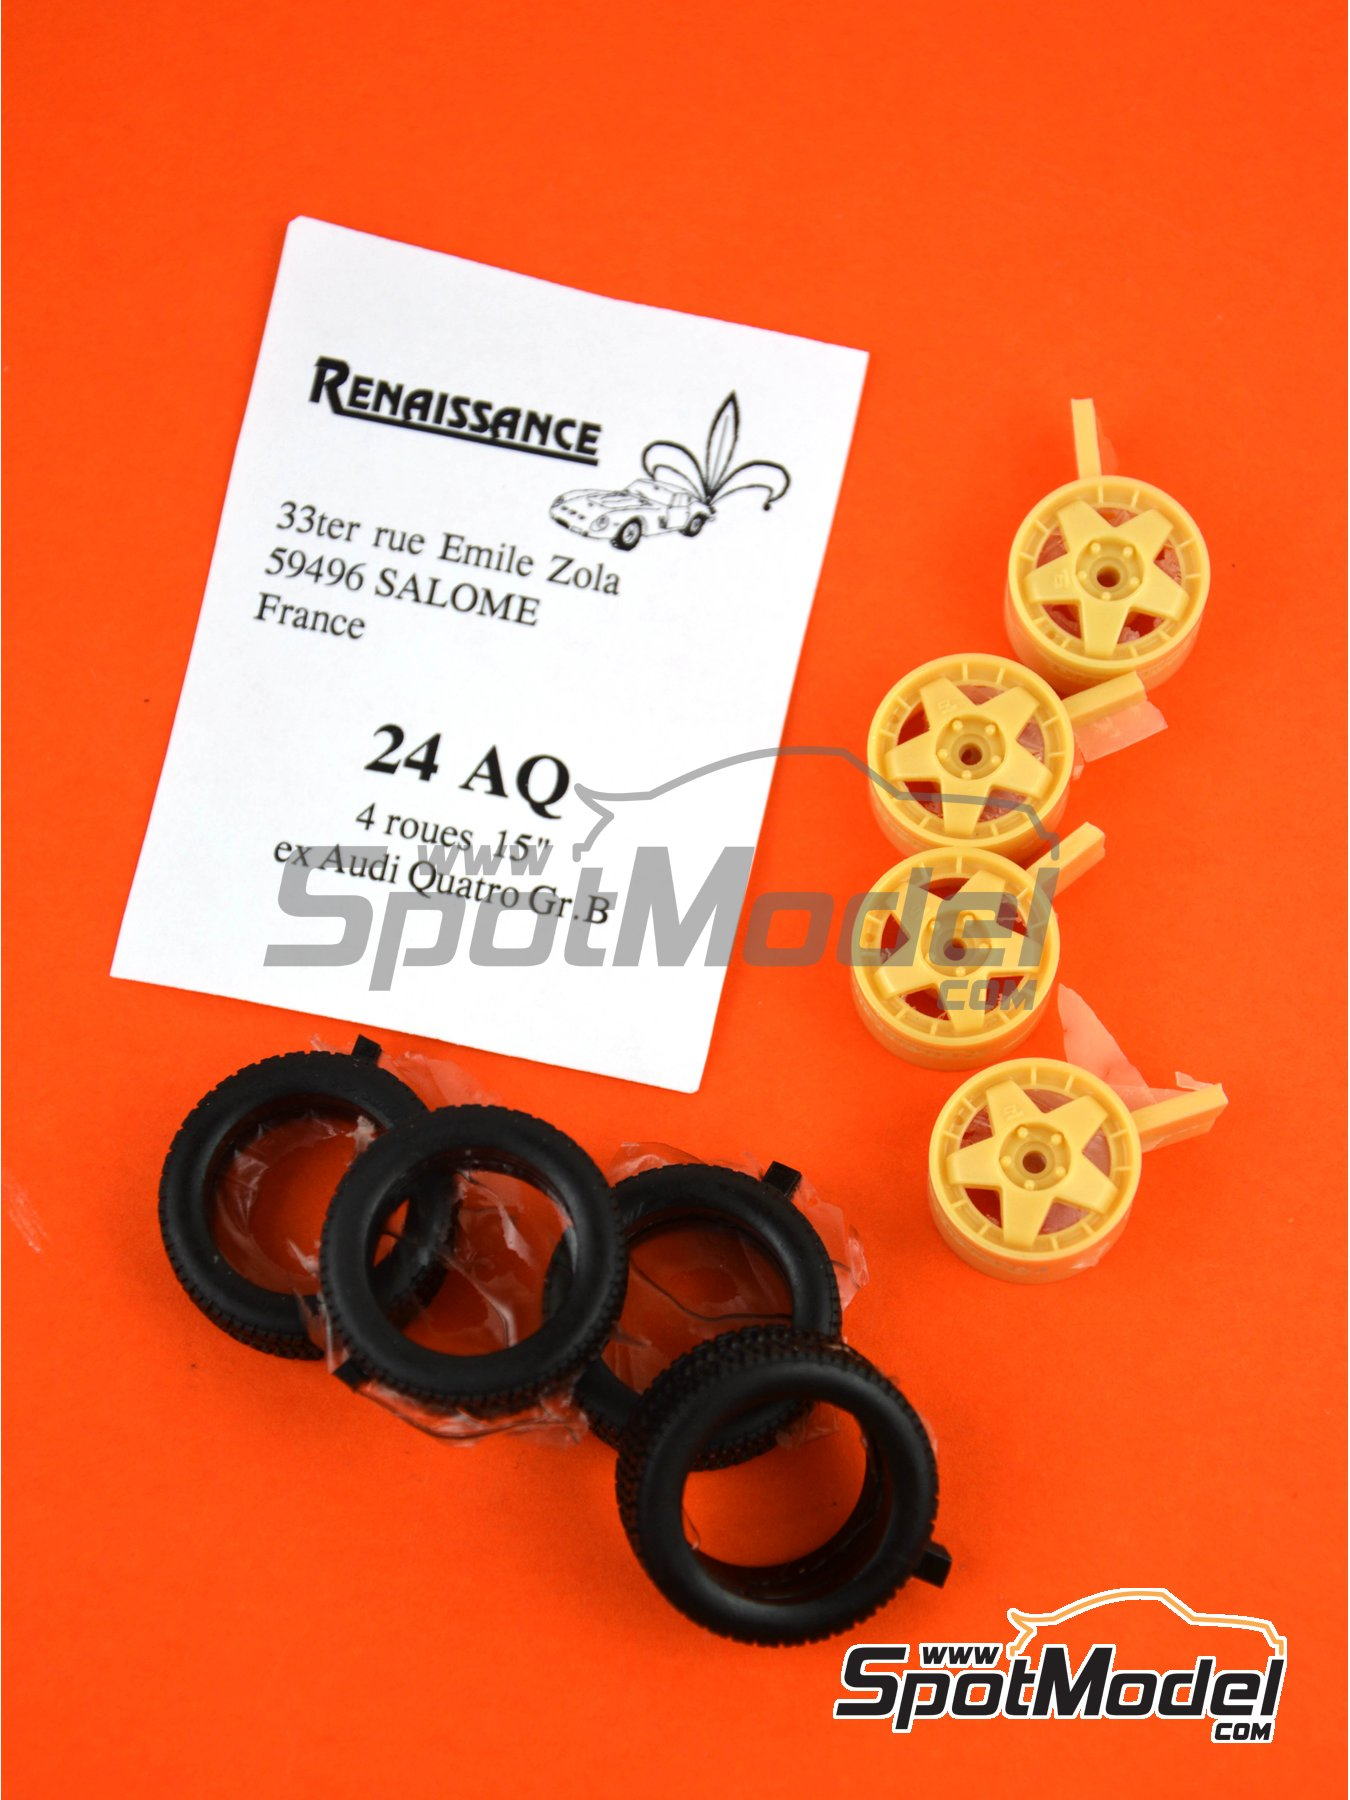 Audi Quattro Group B 15 inches rims | Rims and tyres set in 1/24 scale manufactured by Renaissance Models (ref. 24AQ) image